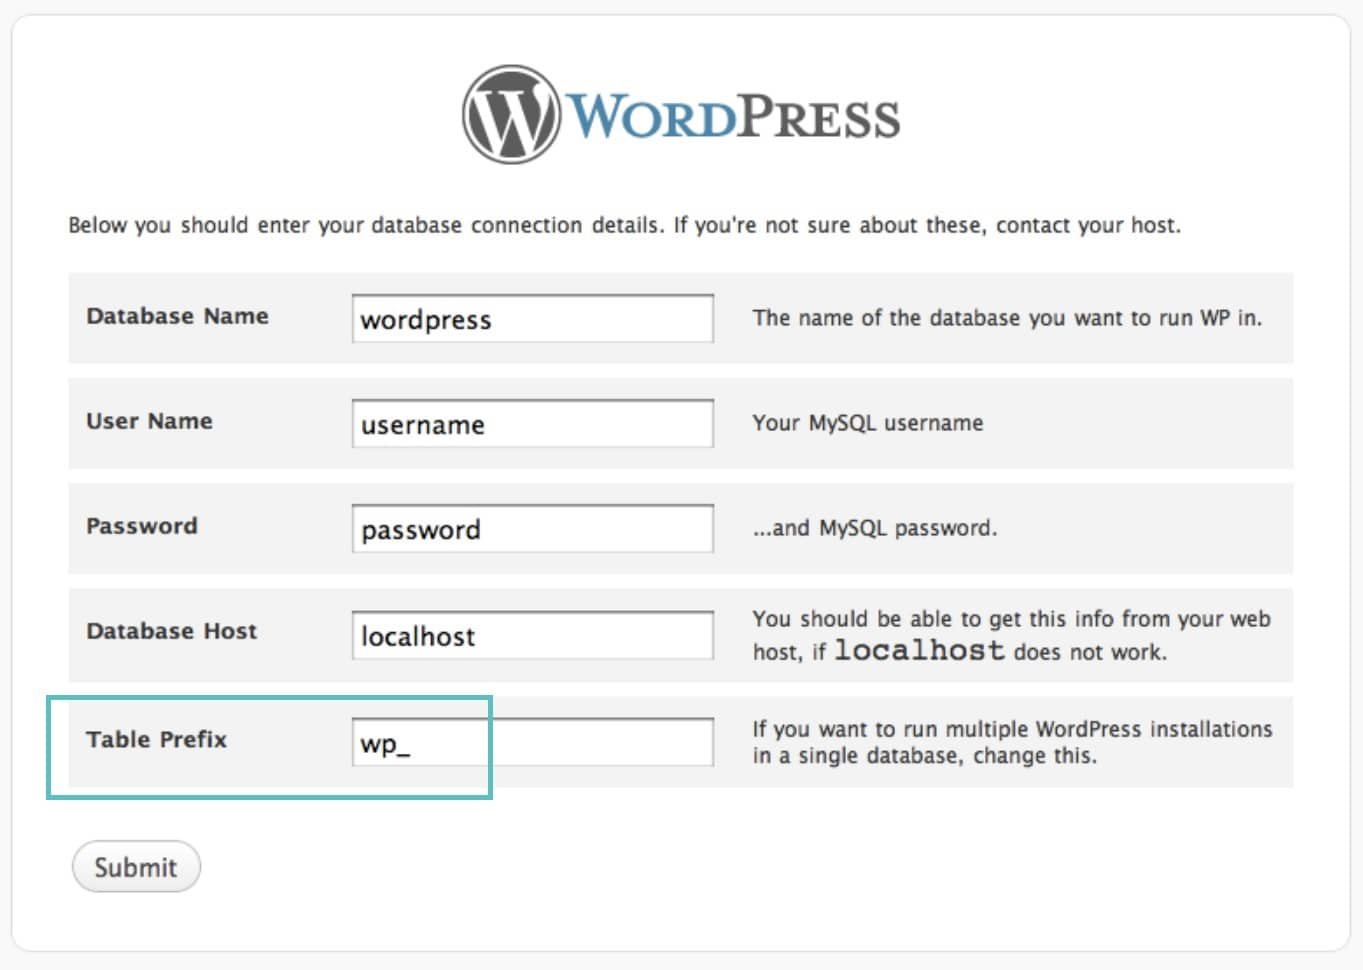 wordpress table prefix